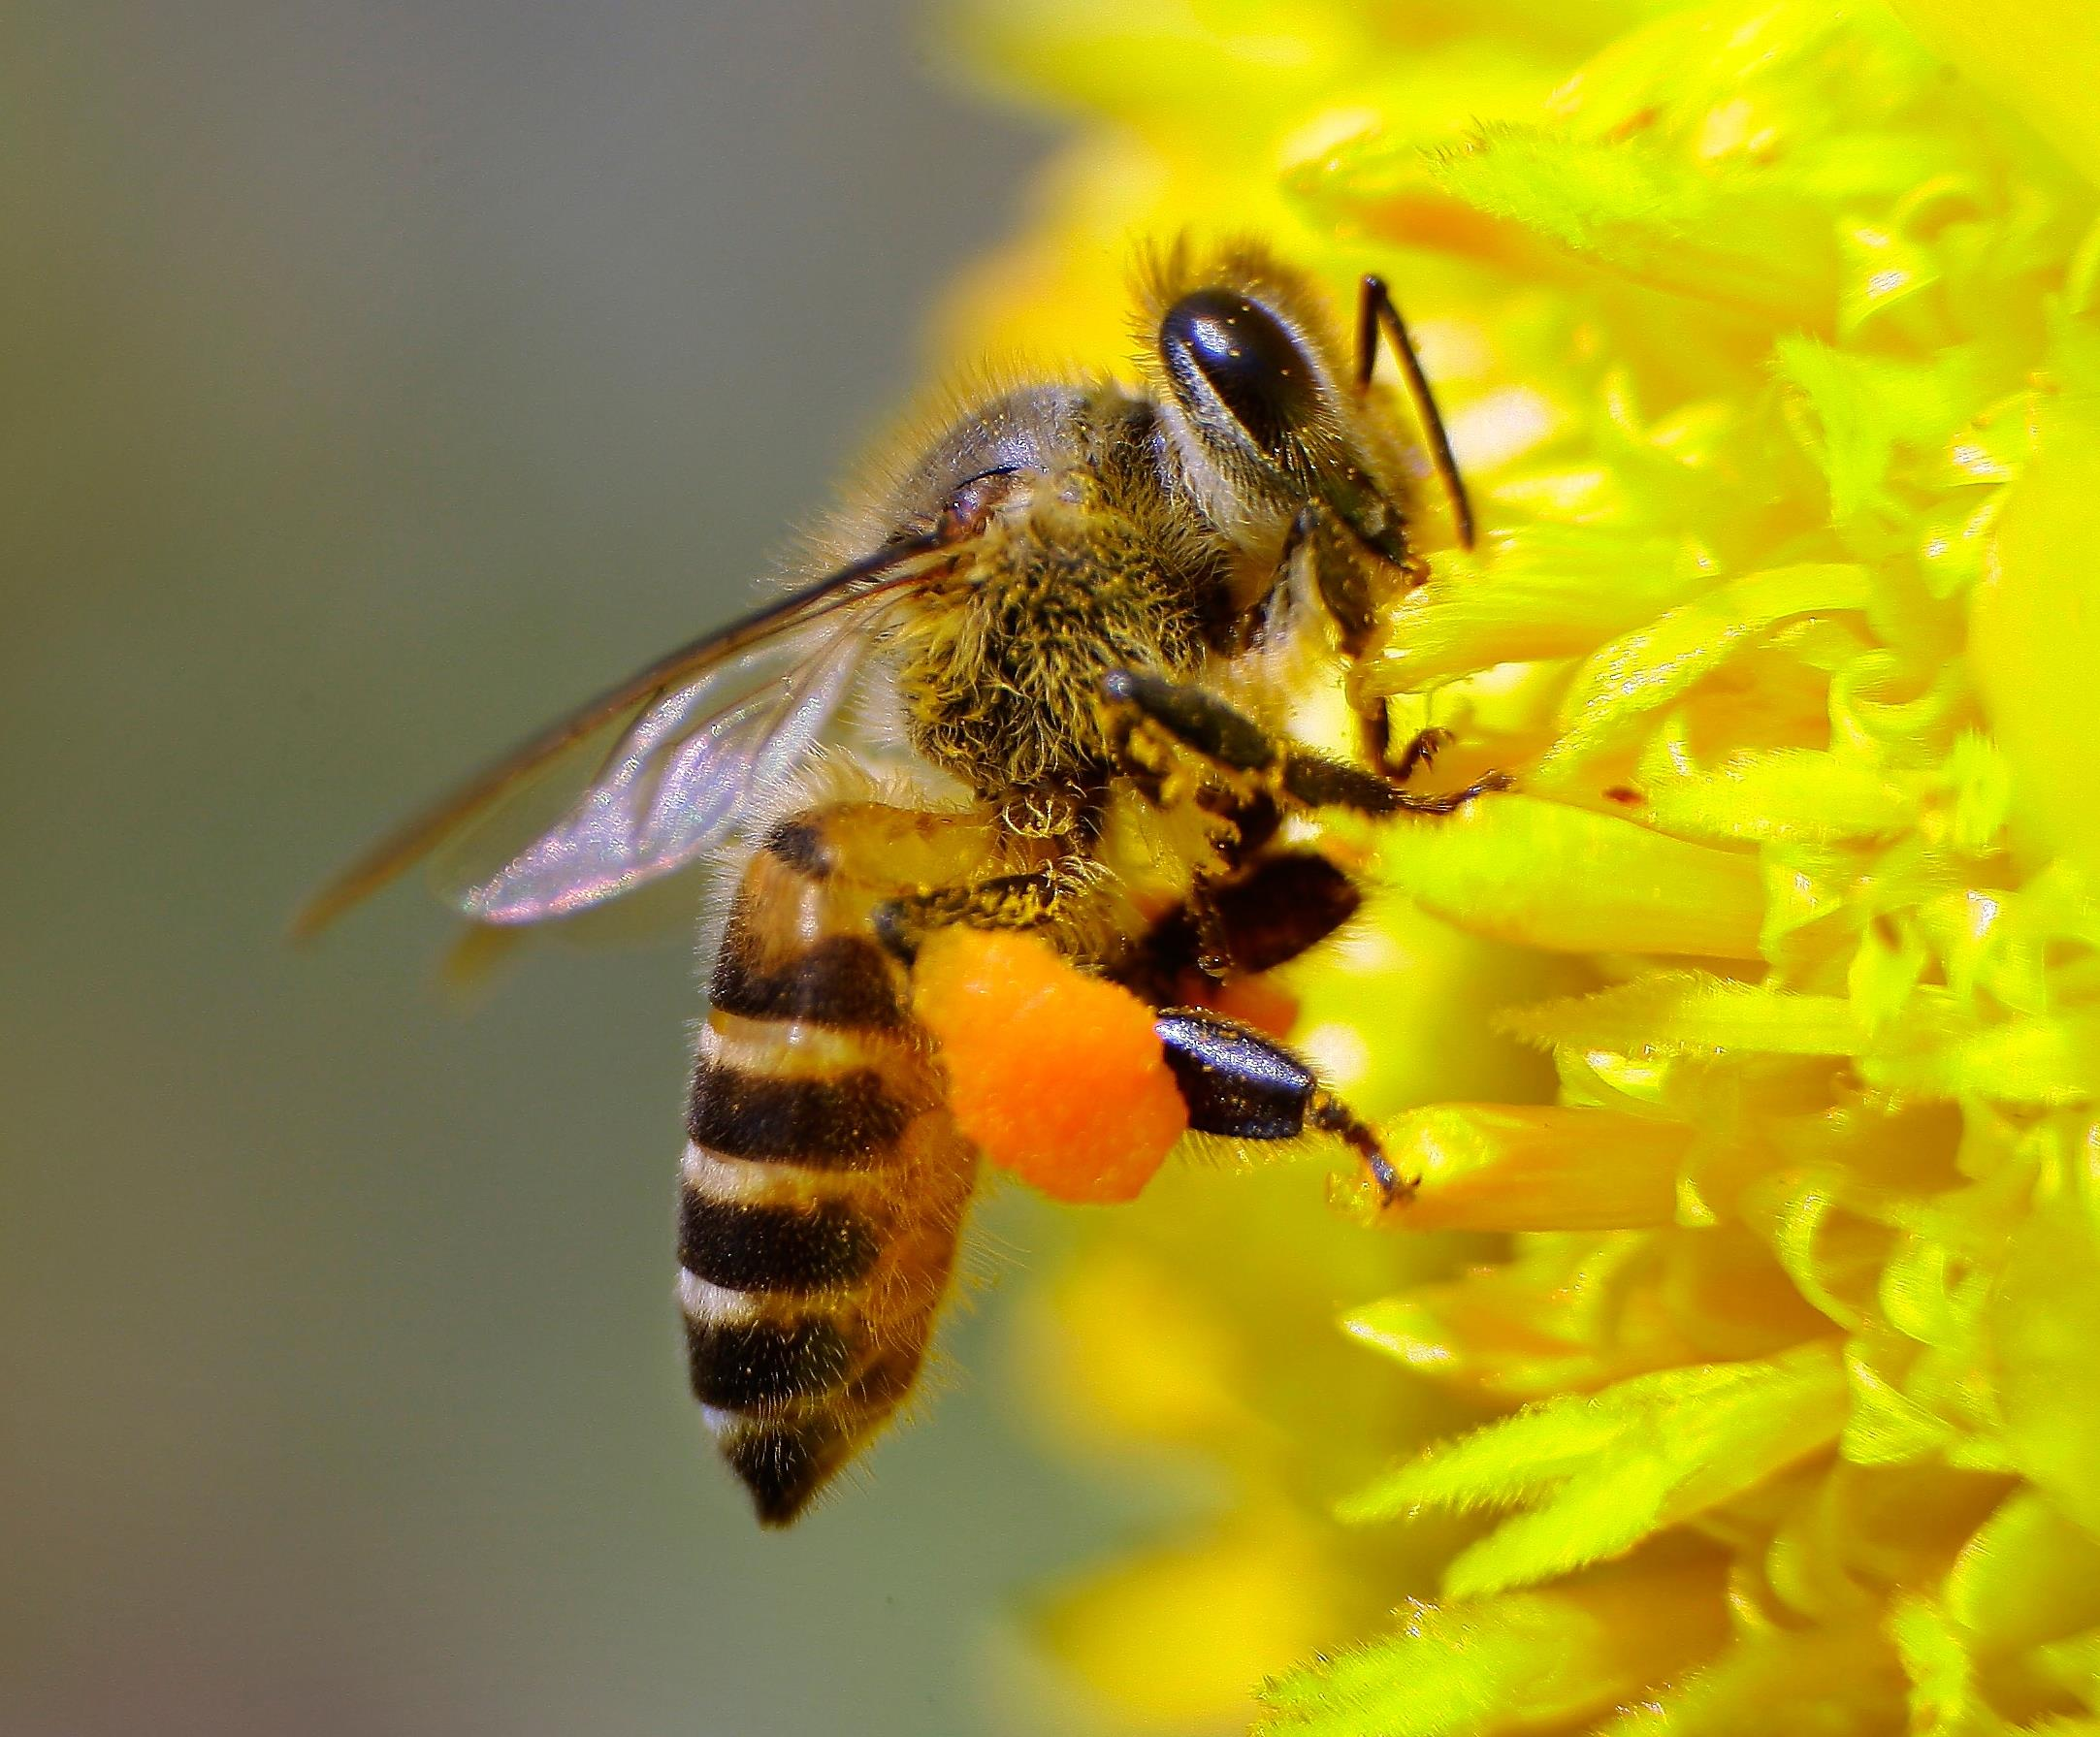 the honeybee protection crisis in the united states Food & agriculture tell kroger: step up and protect bees  friends of the earth  us applauds canada's ban on bee-killing pesticides, urges epa and food.